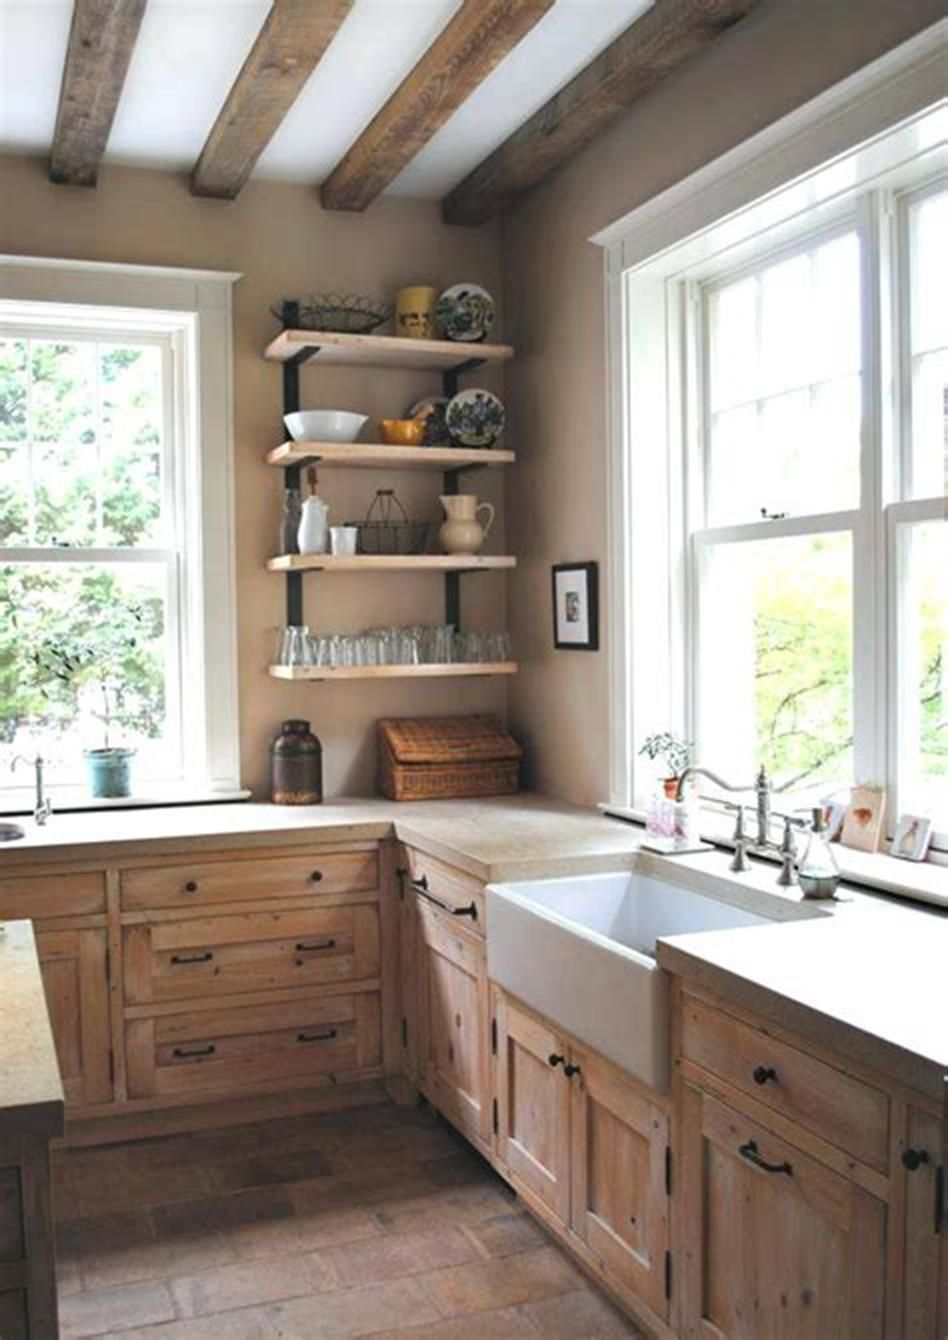 46 most popular kitchen color schemes trends 2019 country kitchen designs rustic kitchen on kitchen ideas colorful id=75341